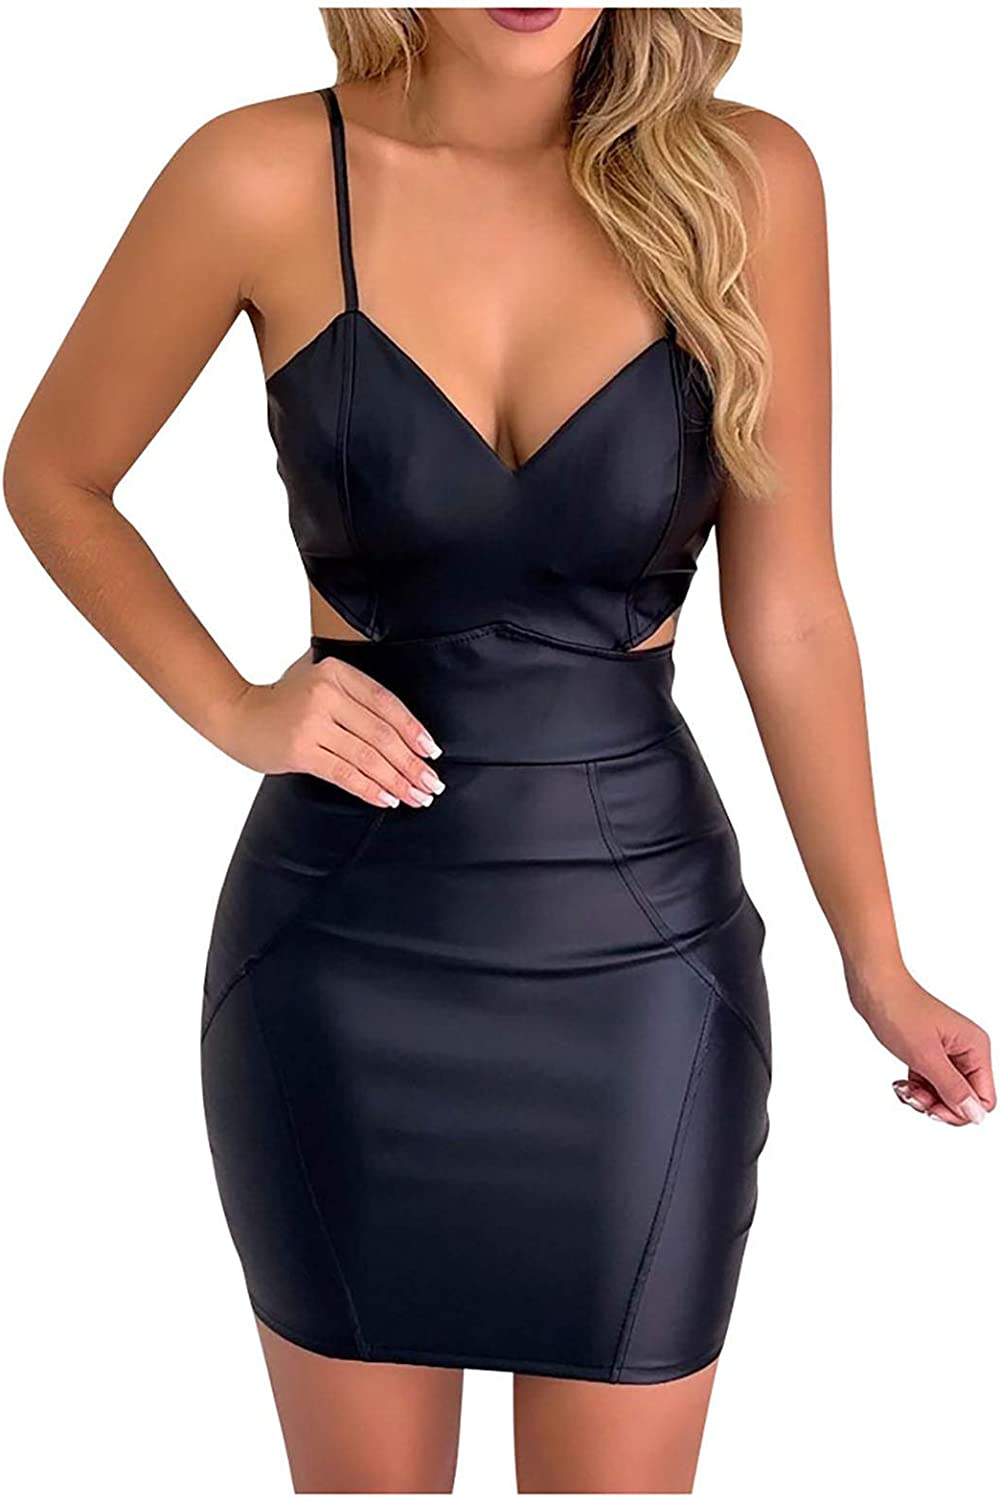 Women's Spaghetti Strap Mini Dress Faux Leather Solid Color V-Neck Hollow Out Party Club Bodycon Dress